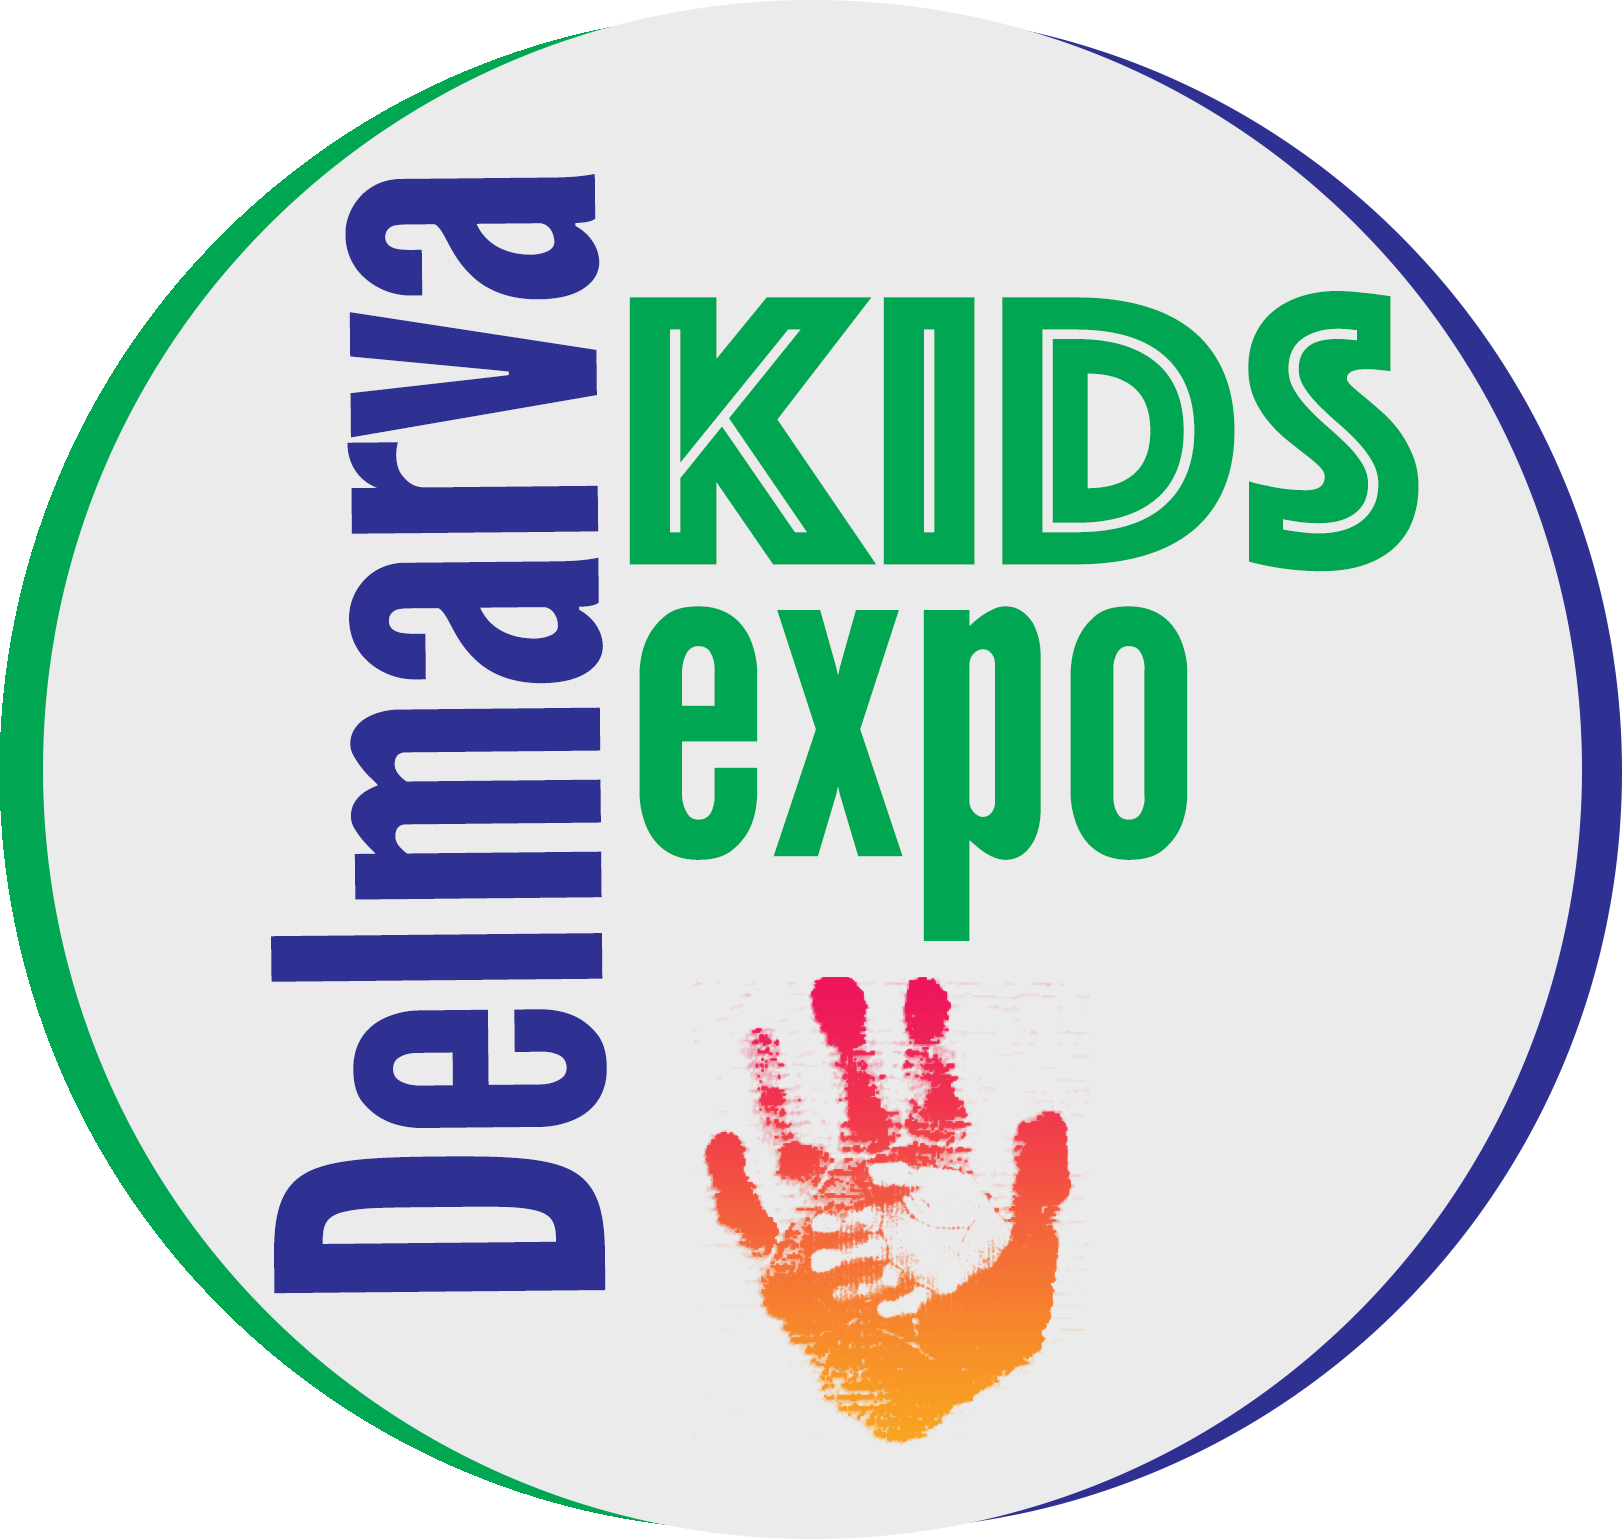 Delmarva Kids Expo